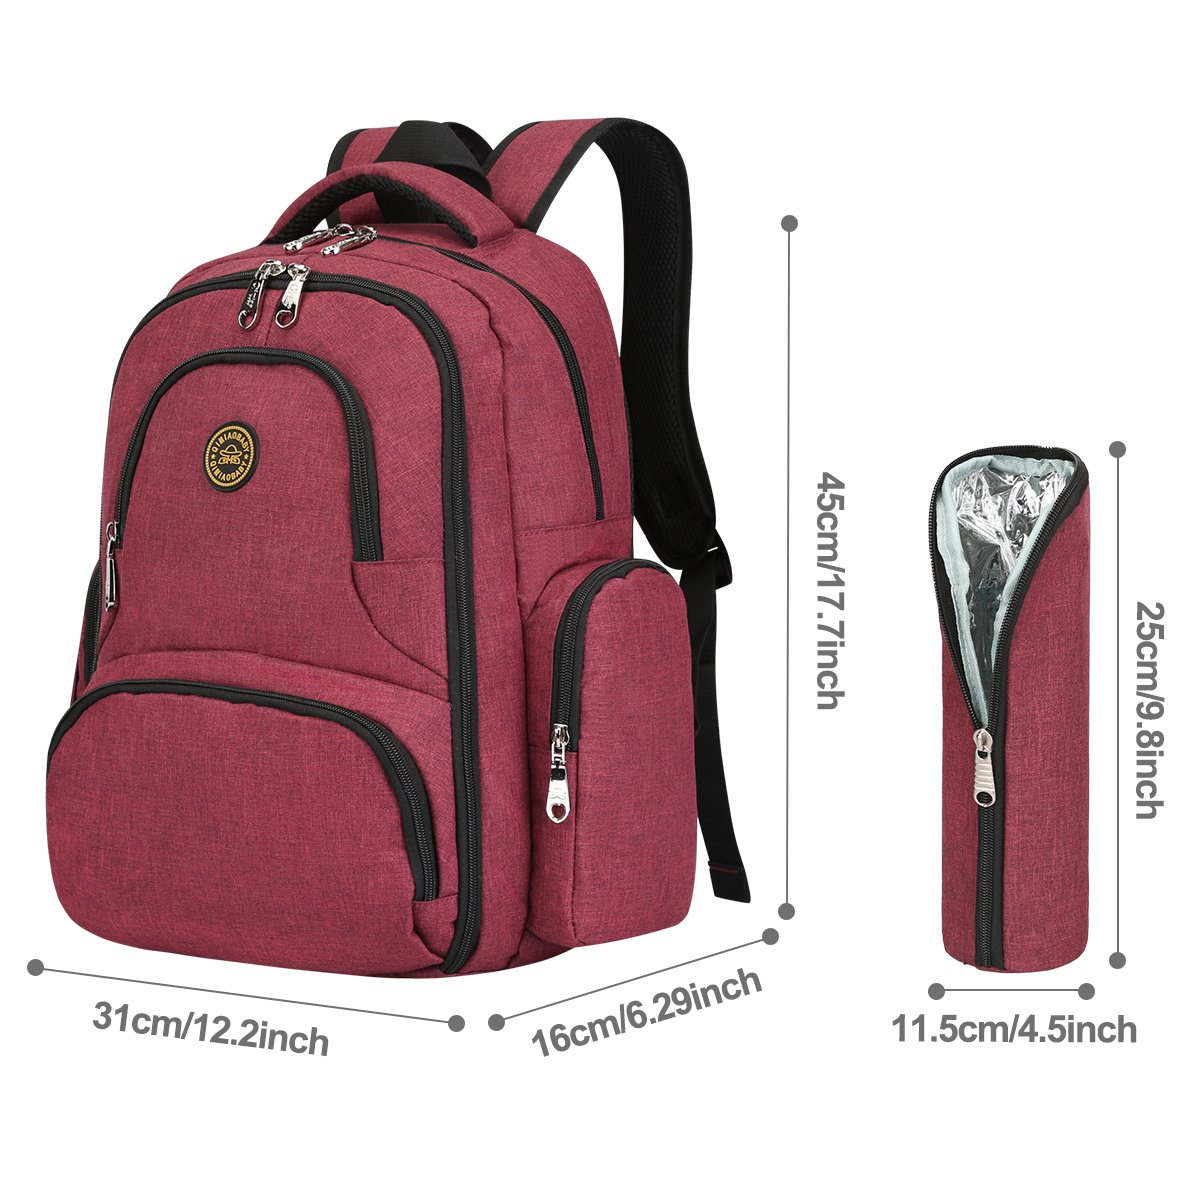 S-ZONE 16 Pockets Baby Diaper Bag Organizer Water Resistant Oxford Fabric Travel Backpack with Changing Pad and Stroller Straps (Wine Red-with Insulated Sleeve) S-ZONE D04V816F